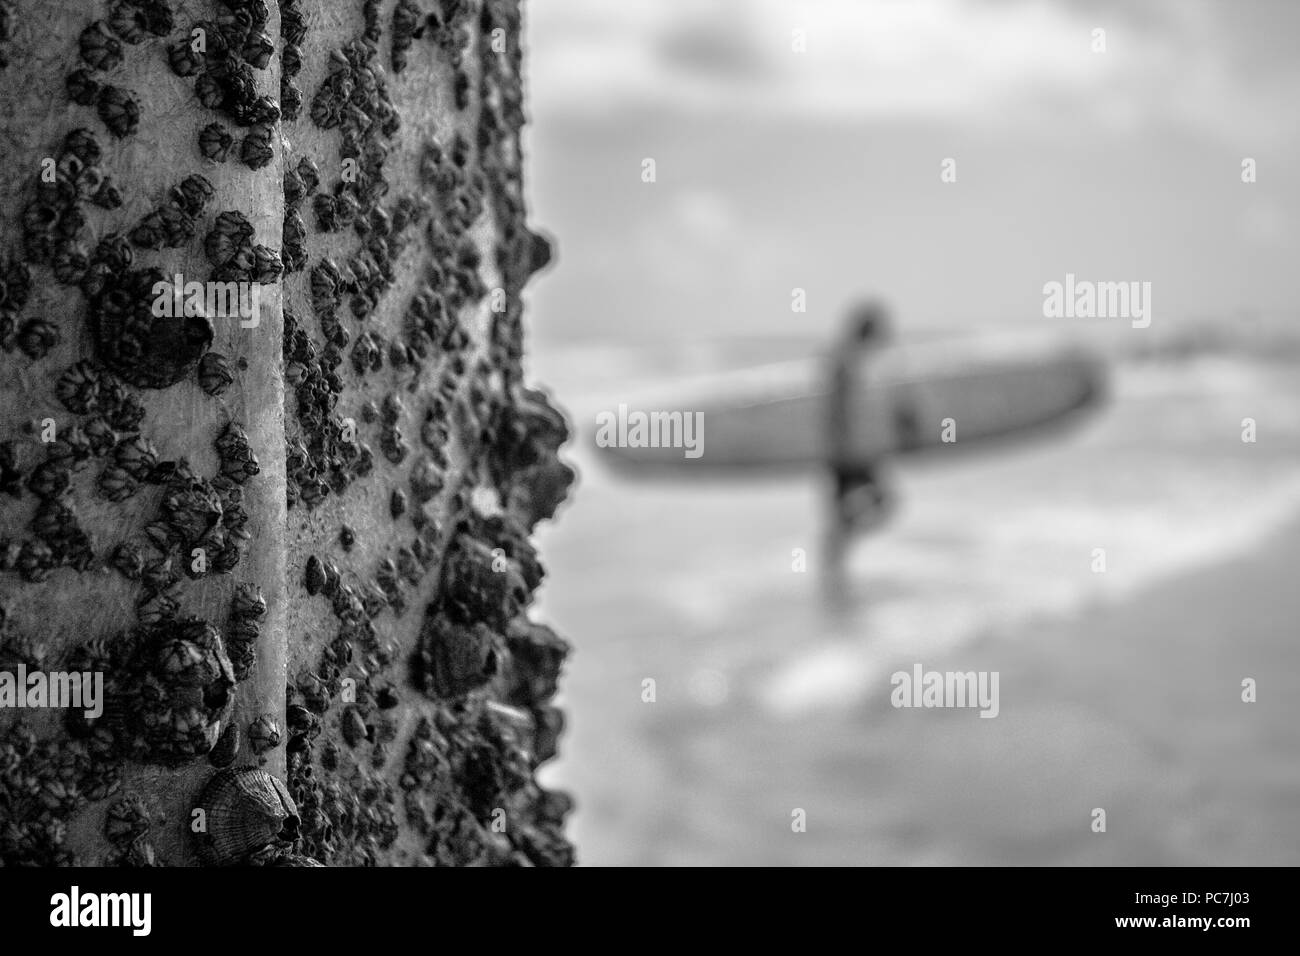 Person walking on beach with surfboard, black and white. - Stock Image